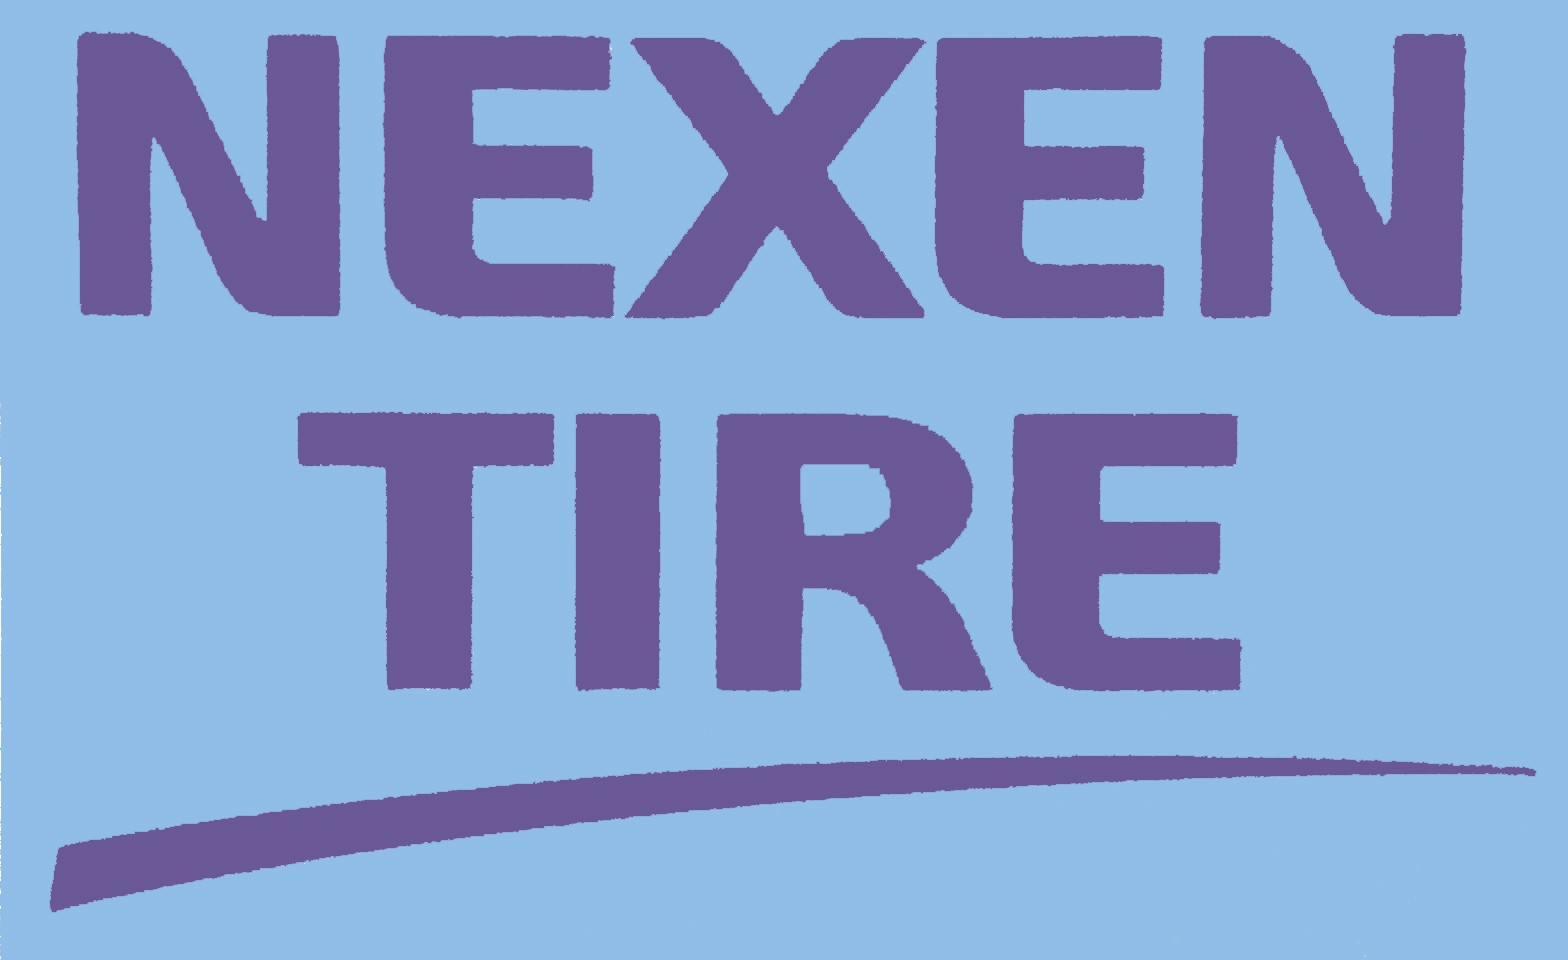 Nexen Tire Sponsor(Purple)Badge